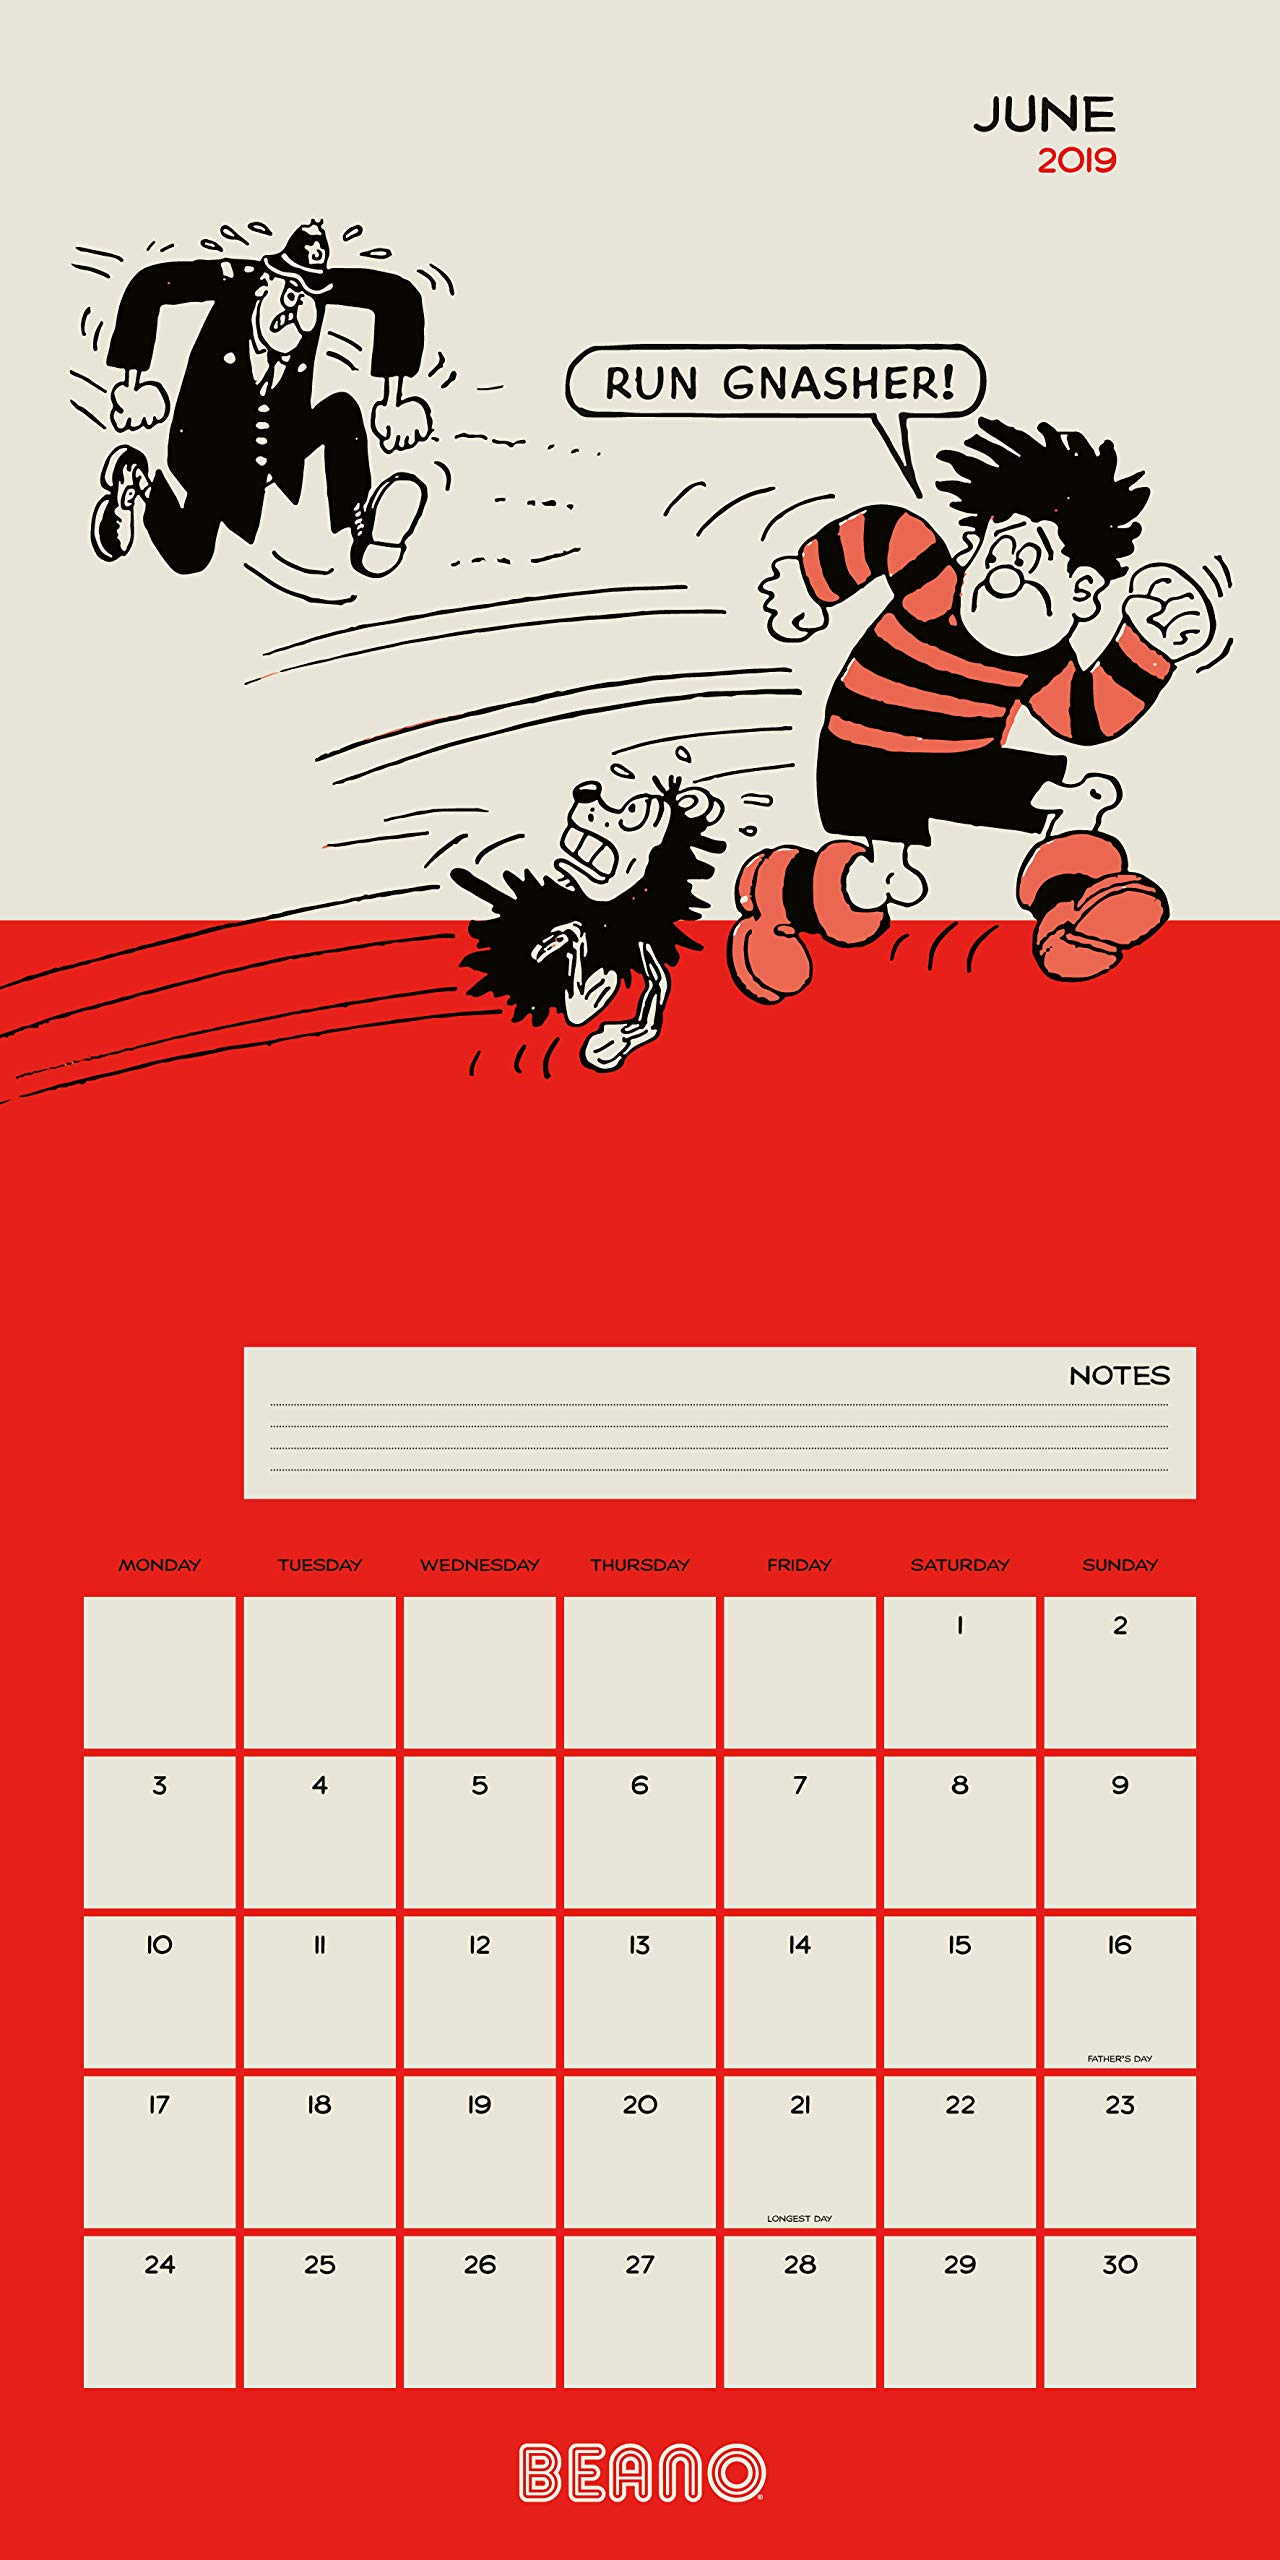 Official 2019 Beano Classic Dennis the Menace Square Calendar Gift Wall Hanging Office Calendars Office Equipment & Supplies